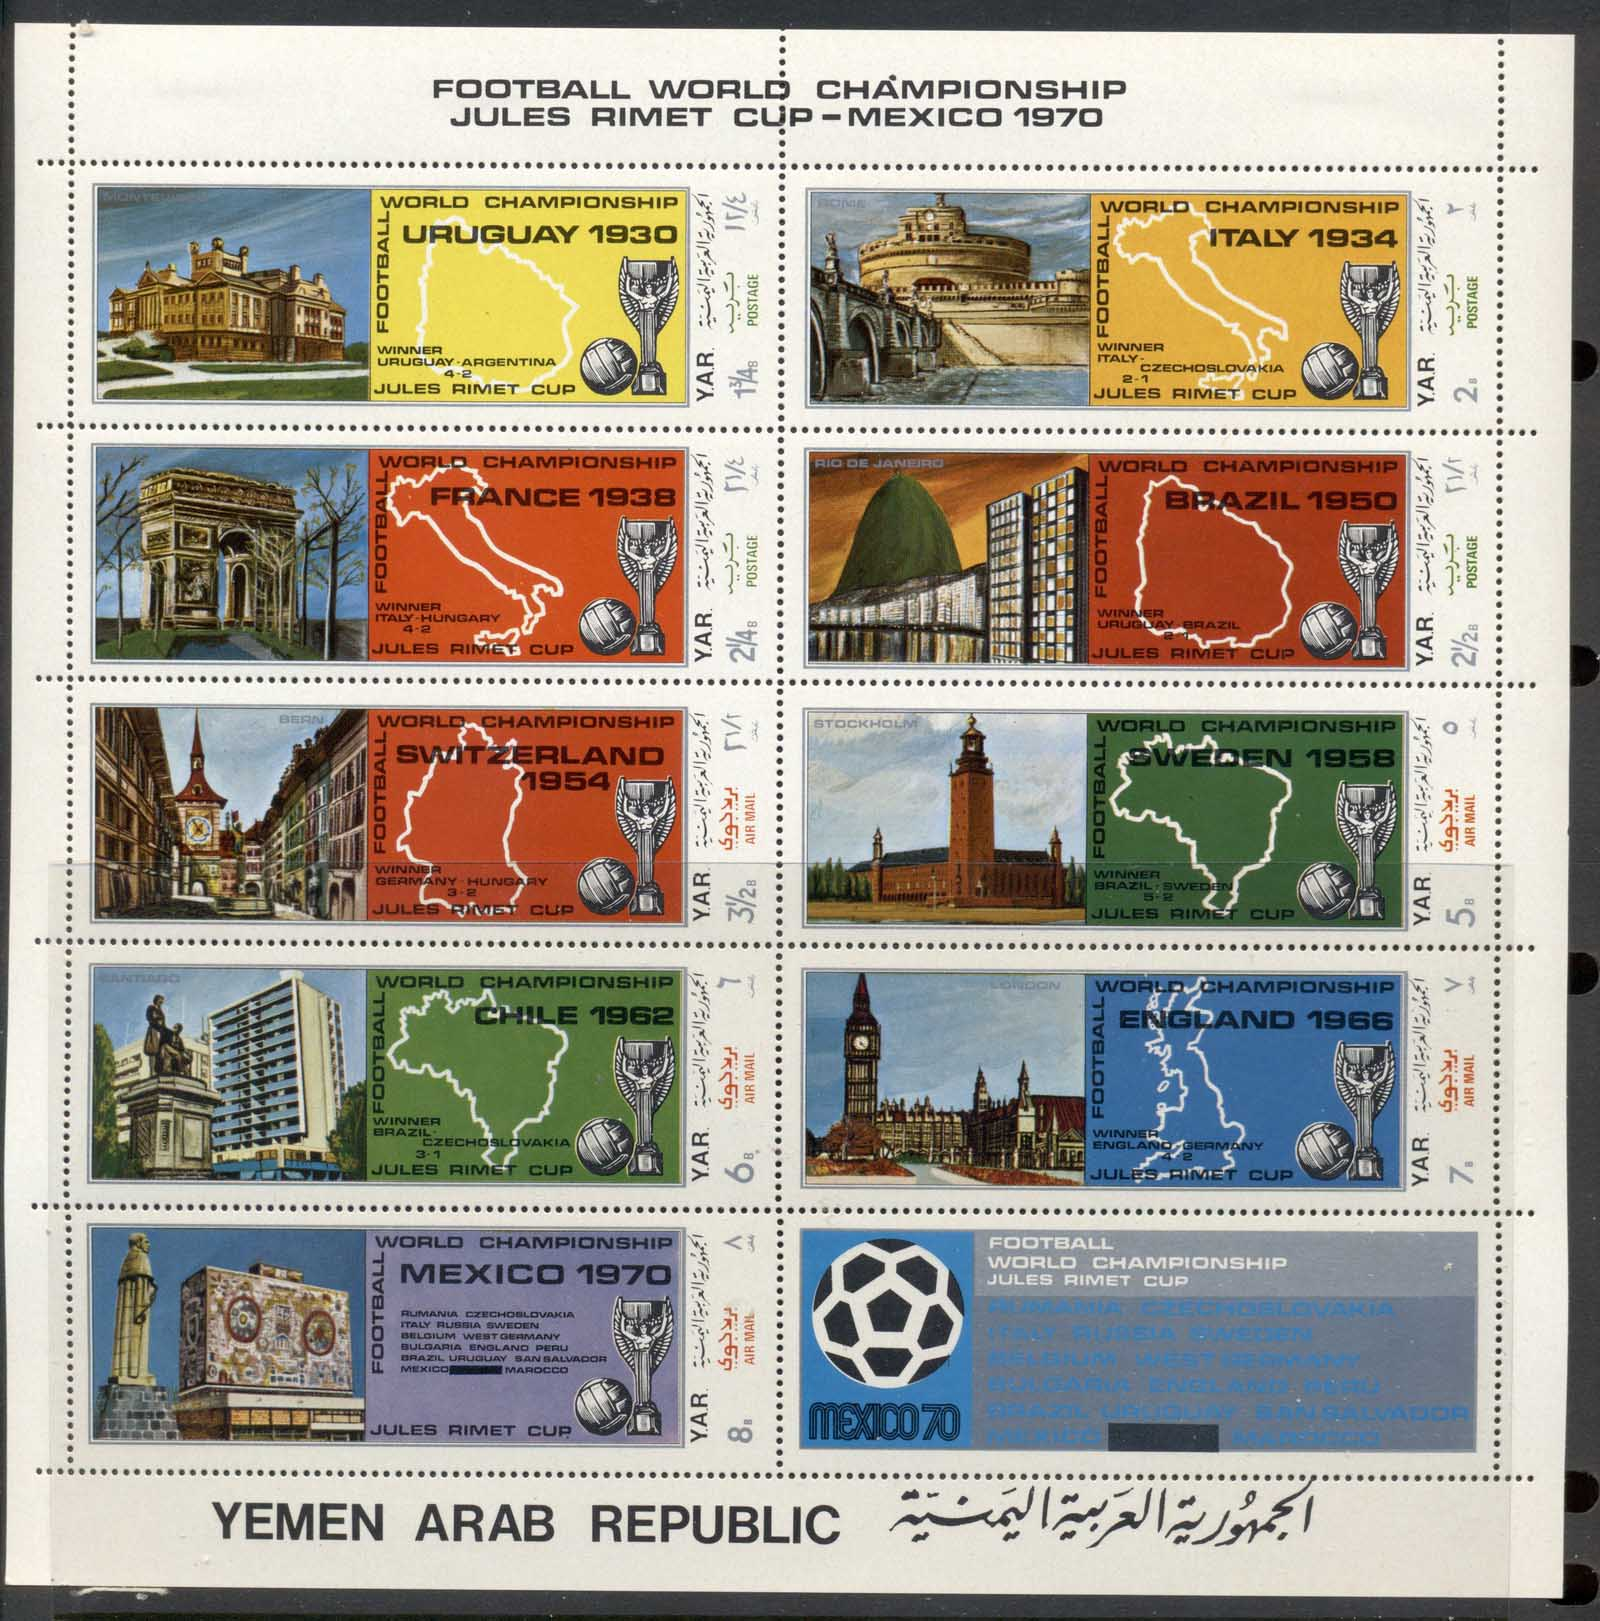 Yemen 1970 Mi#1088-1096 World Cup Soccer Mexico, Previous Venues, Israel redacted sheetlet MLH